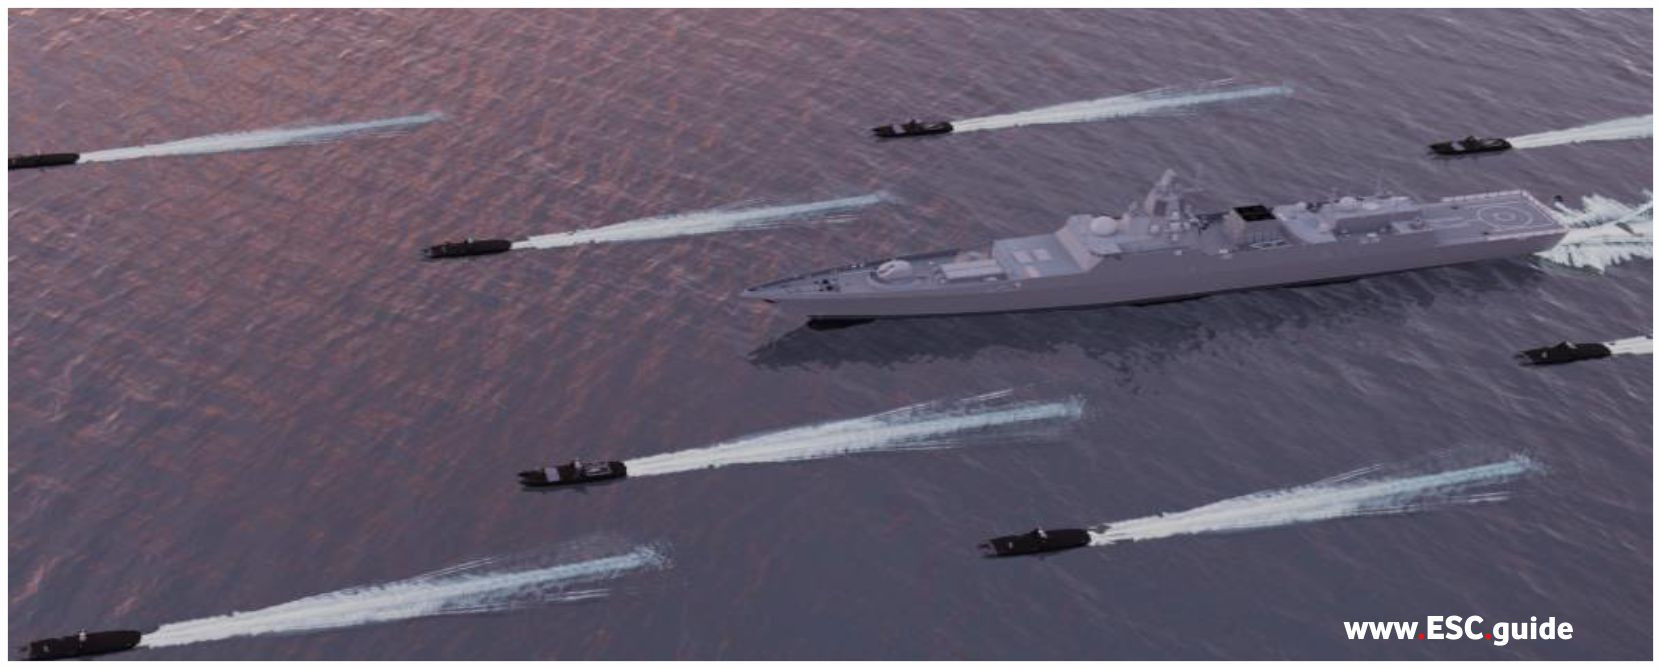 Integrated into in fleet operations to protect frigates, tankers, supply ships, etc. from danger. Can provide lethal or non-lethal support as a force multiplier.